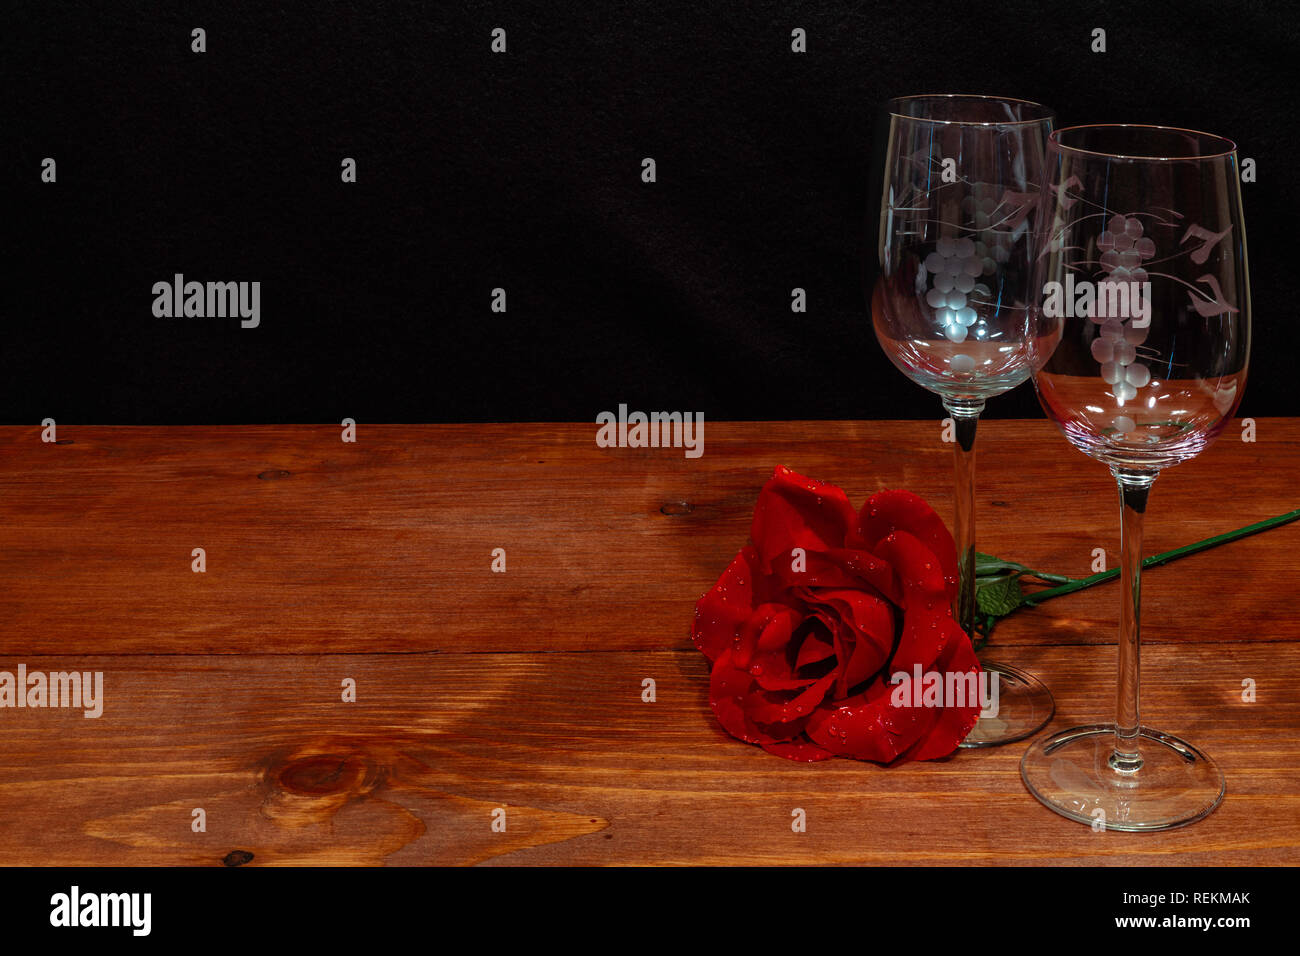 Beautiful etched wine glasses with a single red rose on wooden table and dark background. Valentines, Mothers Day, Easter, Christmas, Wedding Concepts Stock Photo